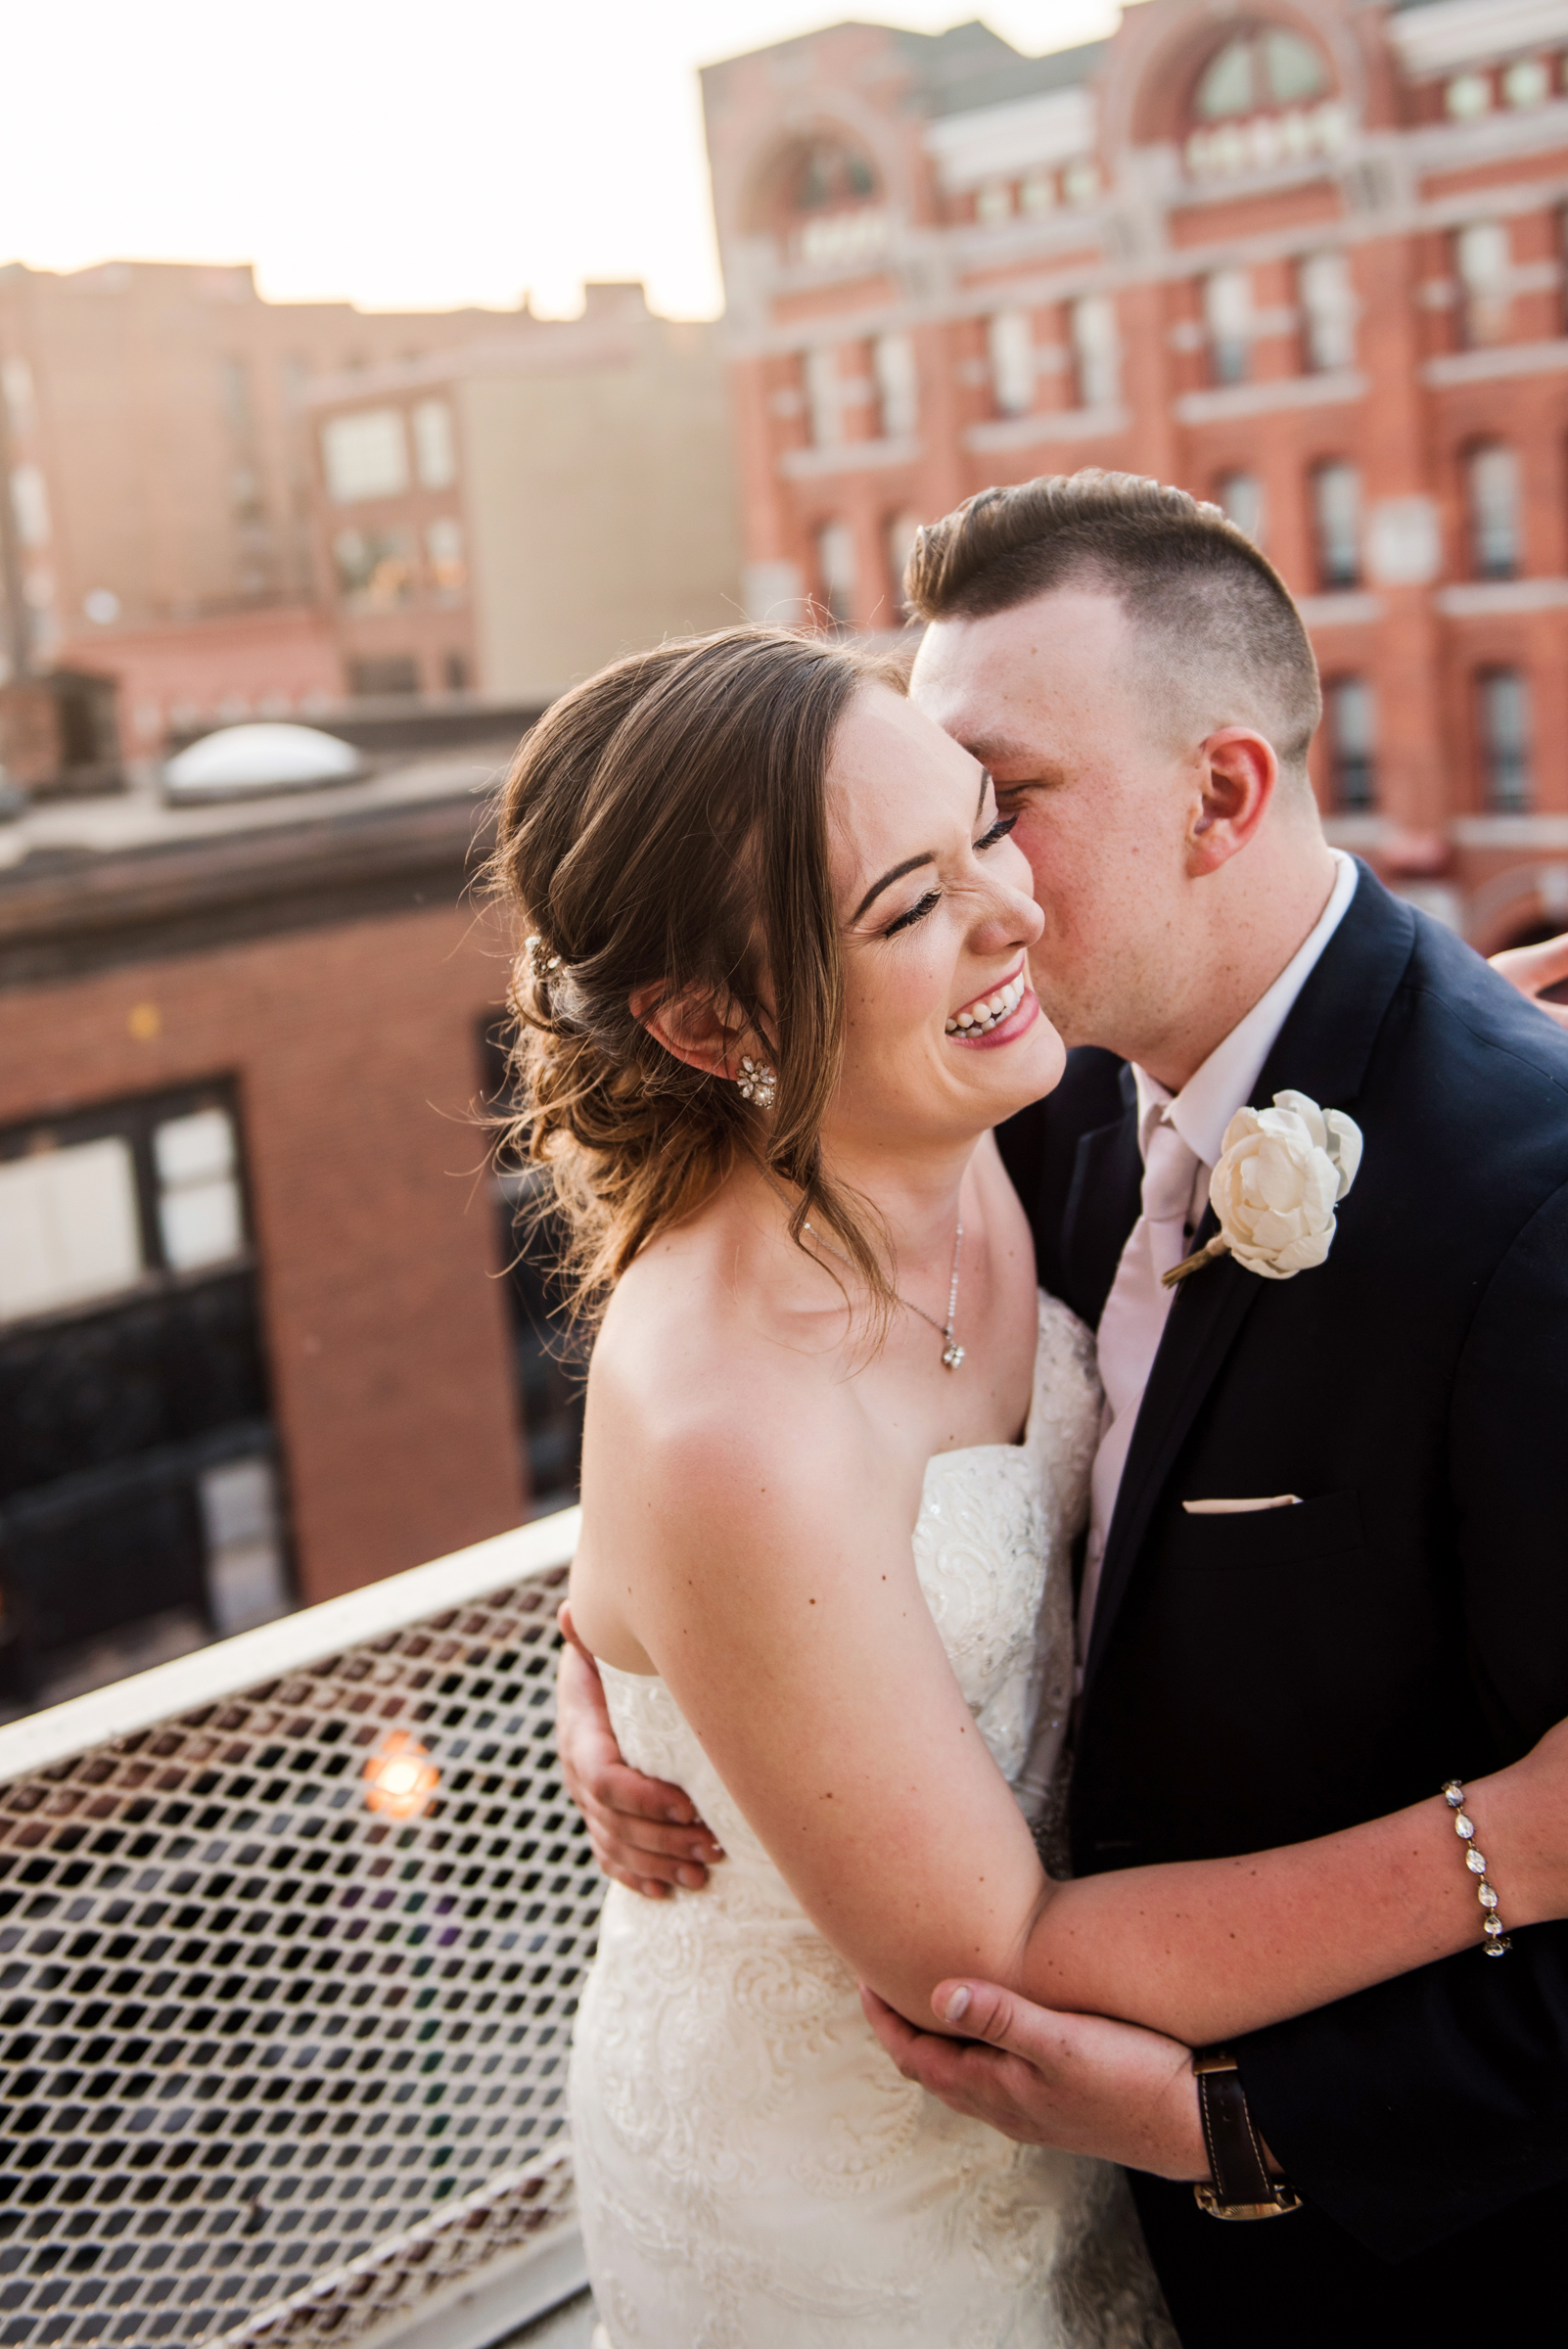 JILL_STUDIO_Wedding_JILL_STUDIO_Rochester_NY_Photographer_6-DSC_3190.jpg